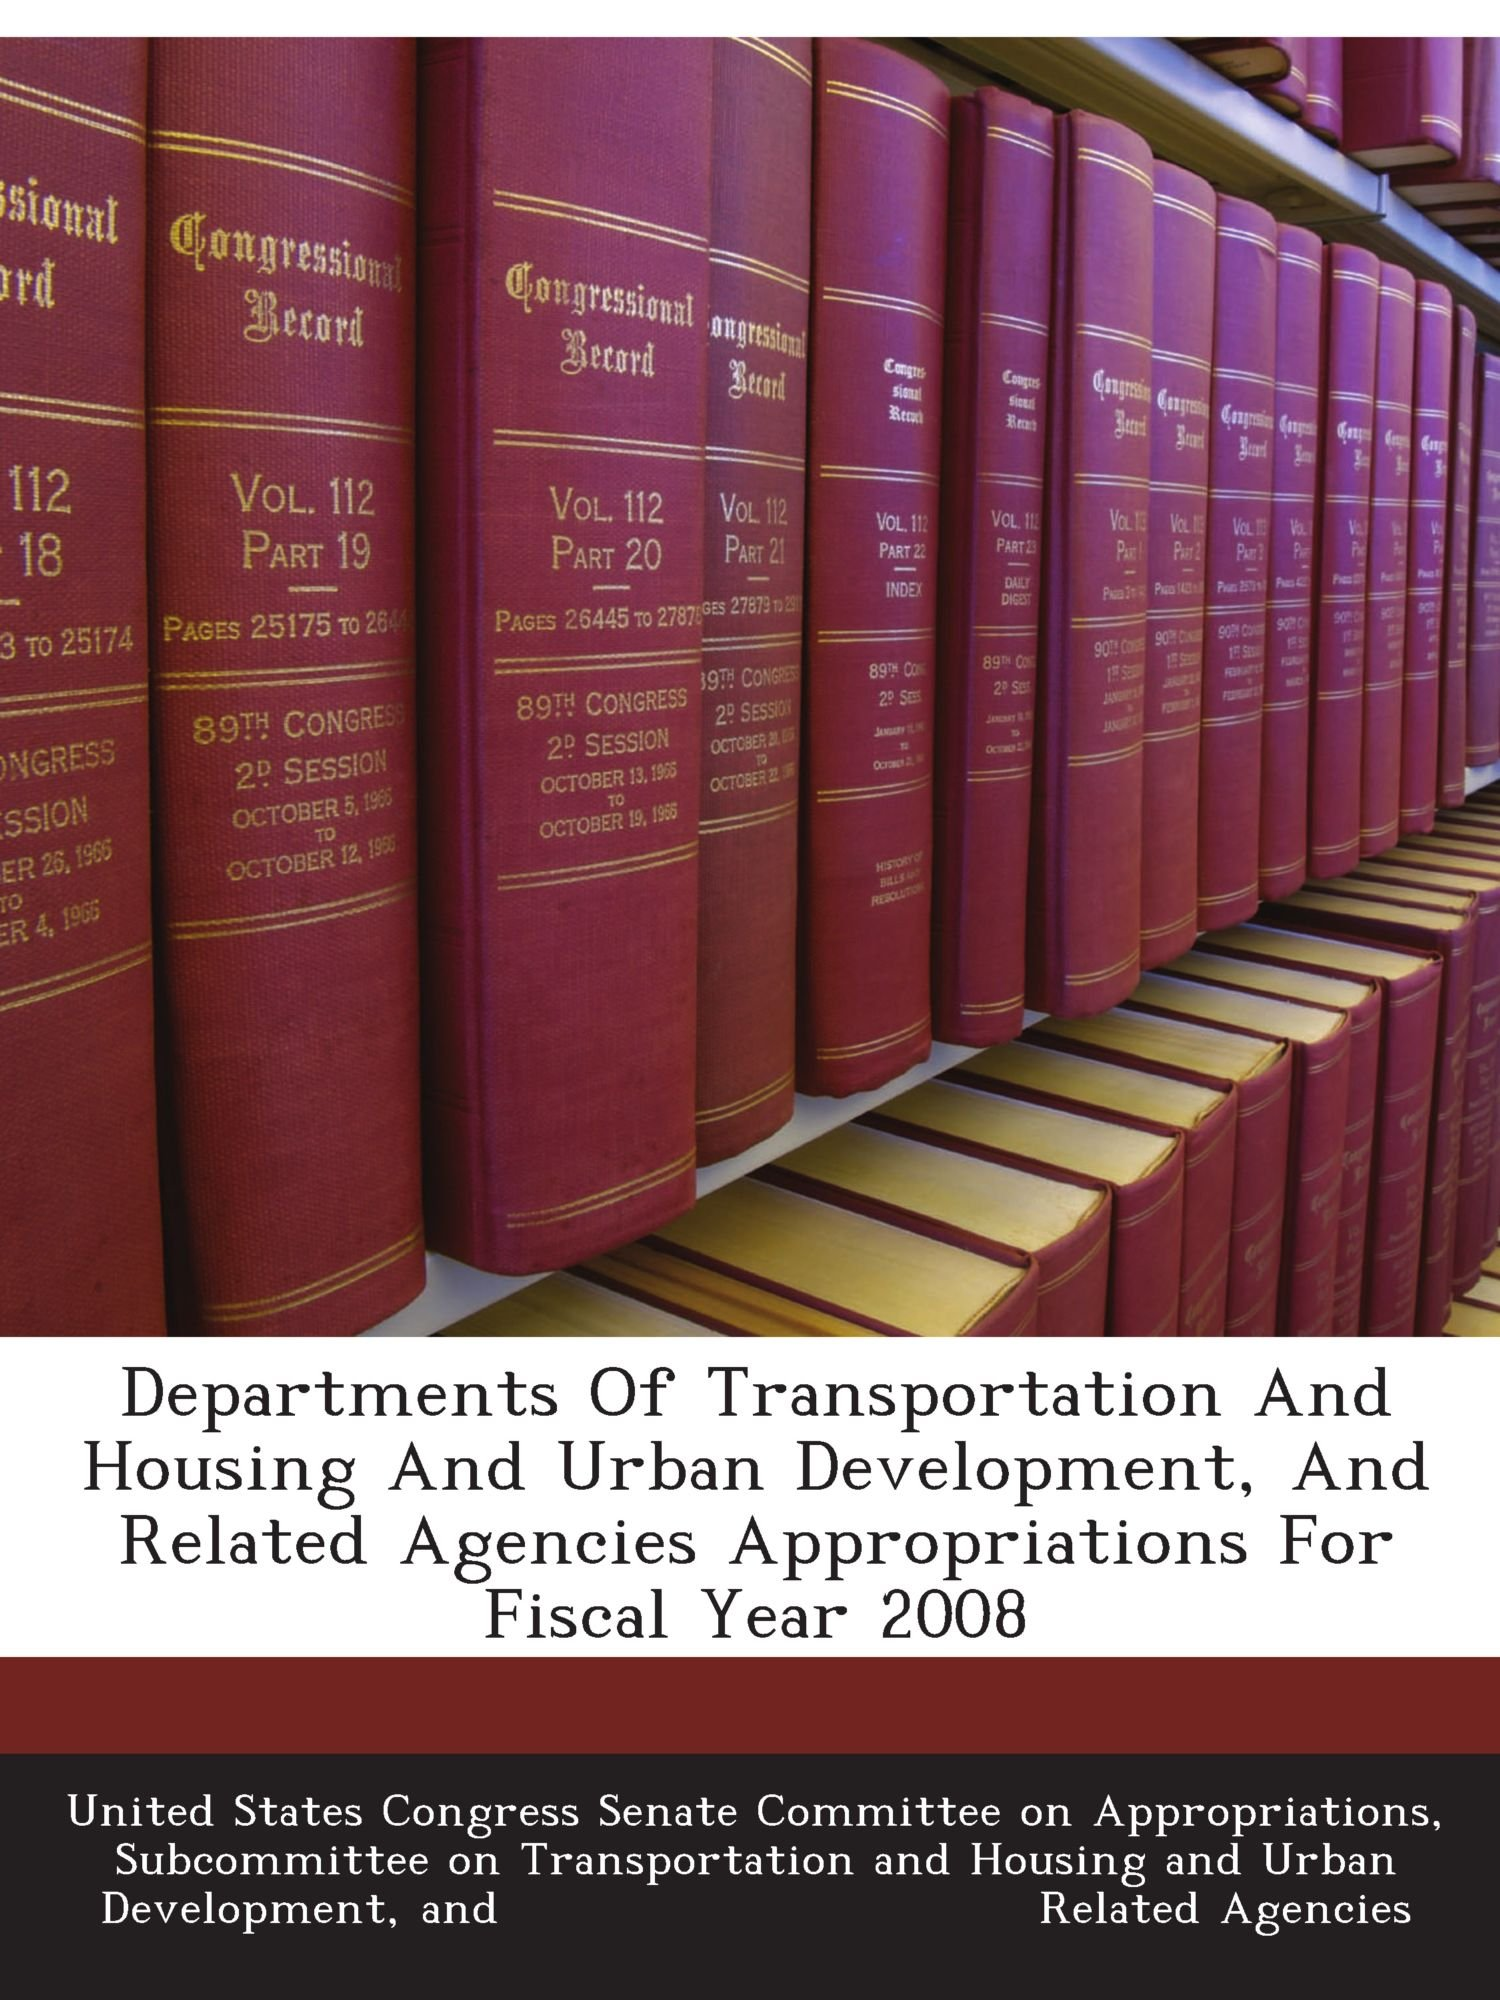 Departments Of Transportation And Housing And Urban Development, And Related Agencies Appropriations For Fiscal Year 2008 ebook